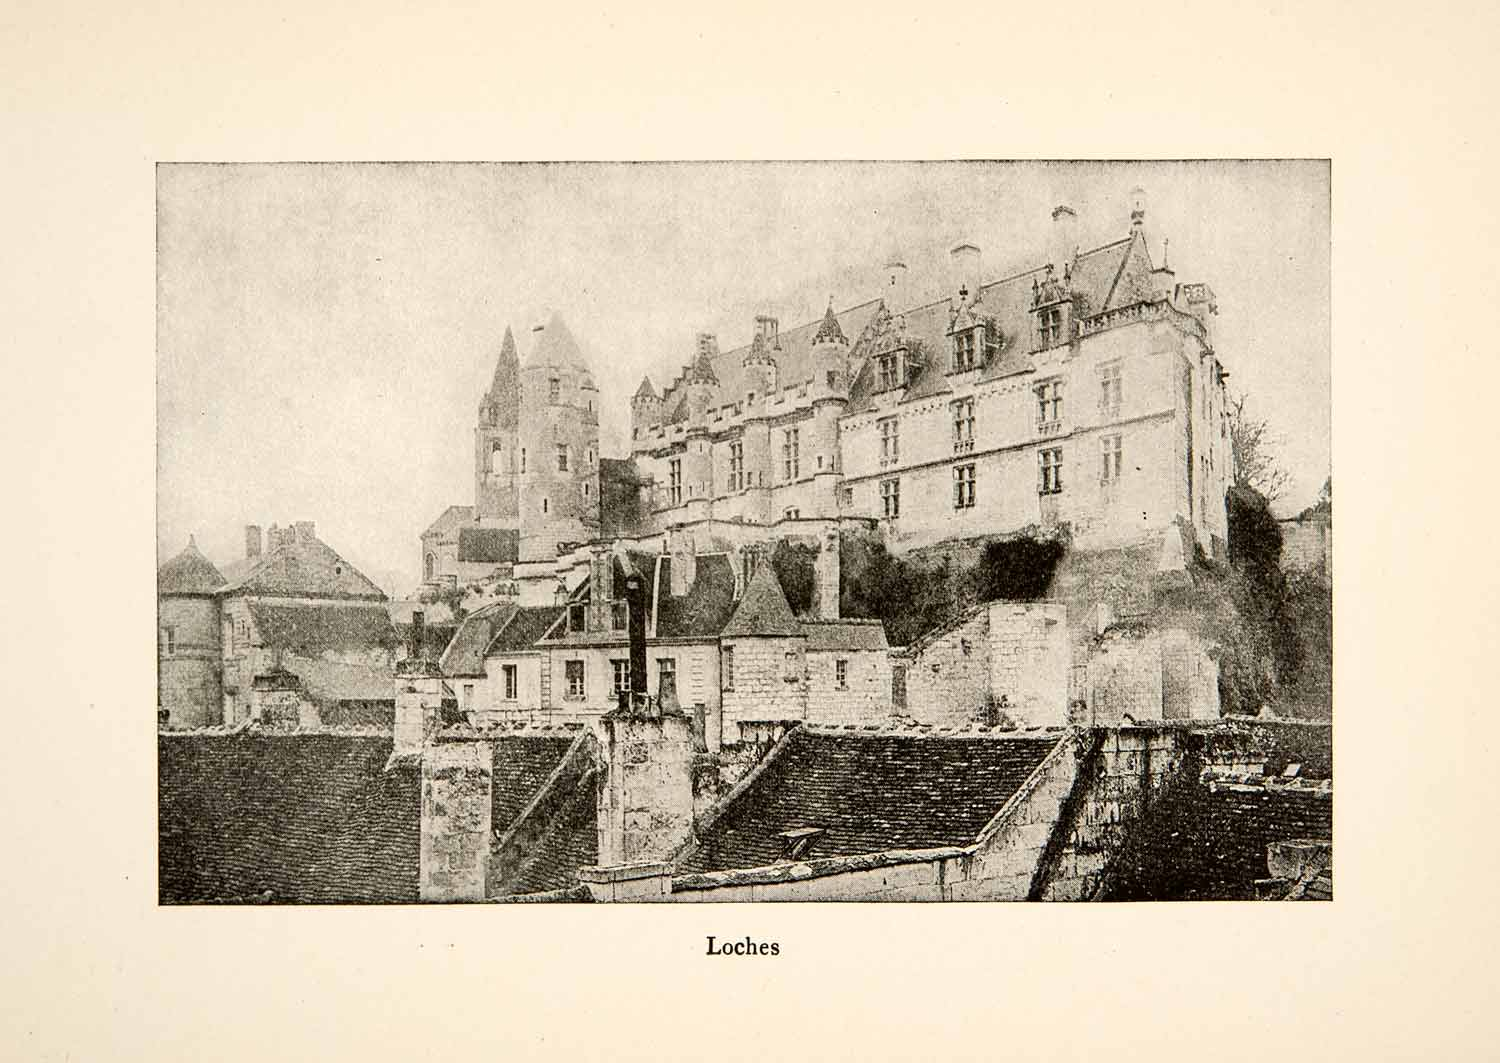 1917 Print Loches Mosastery France Roy L. Hilton Counts Anjou Palace XGHB6